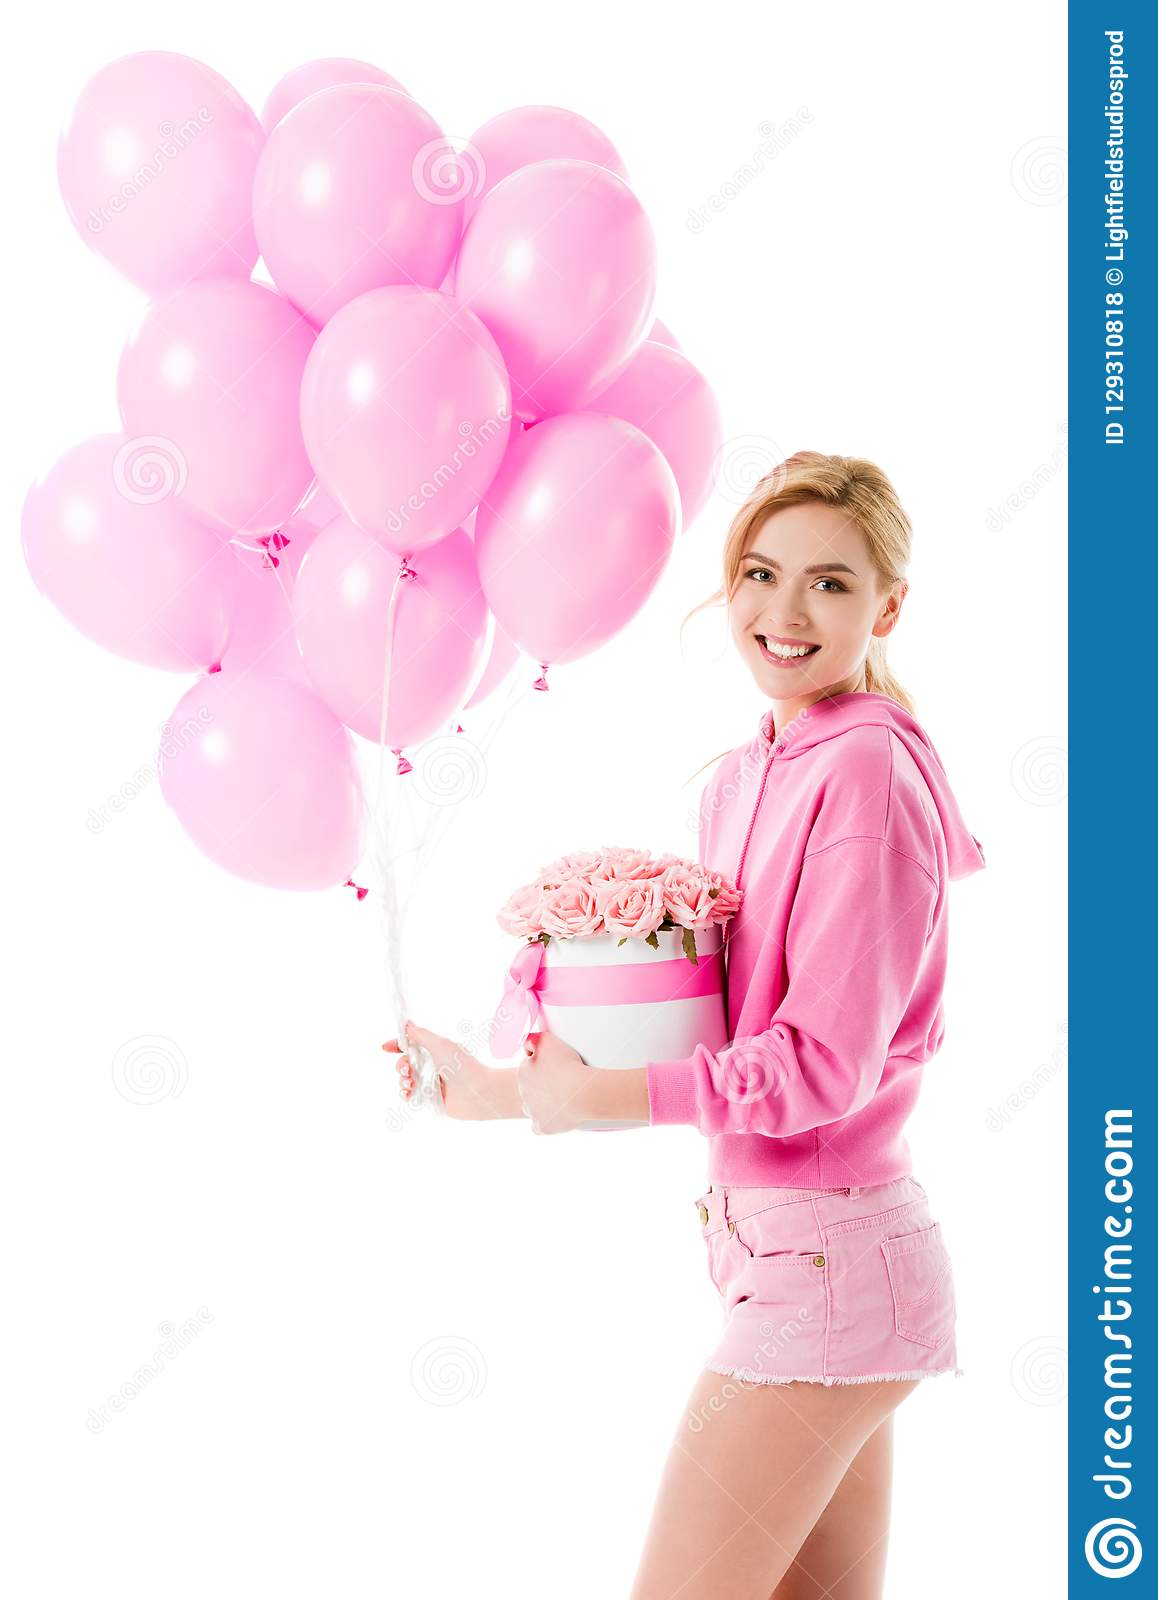 Blonde woman in pink clothes holding balloons with flowers